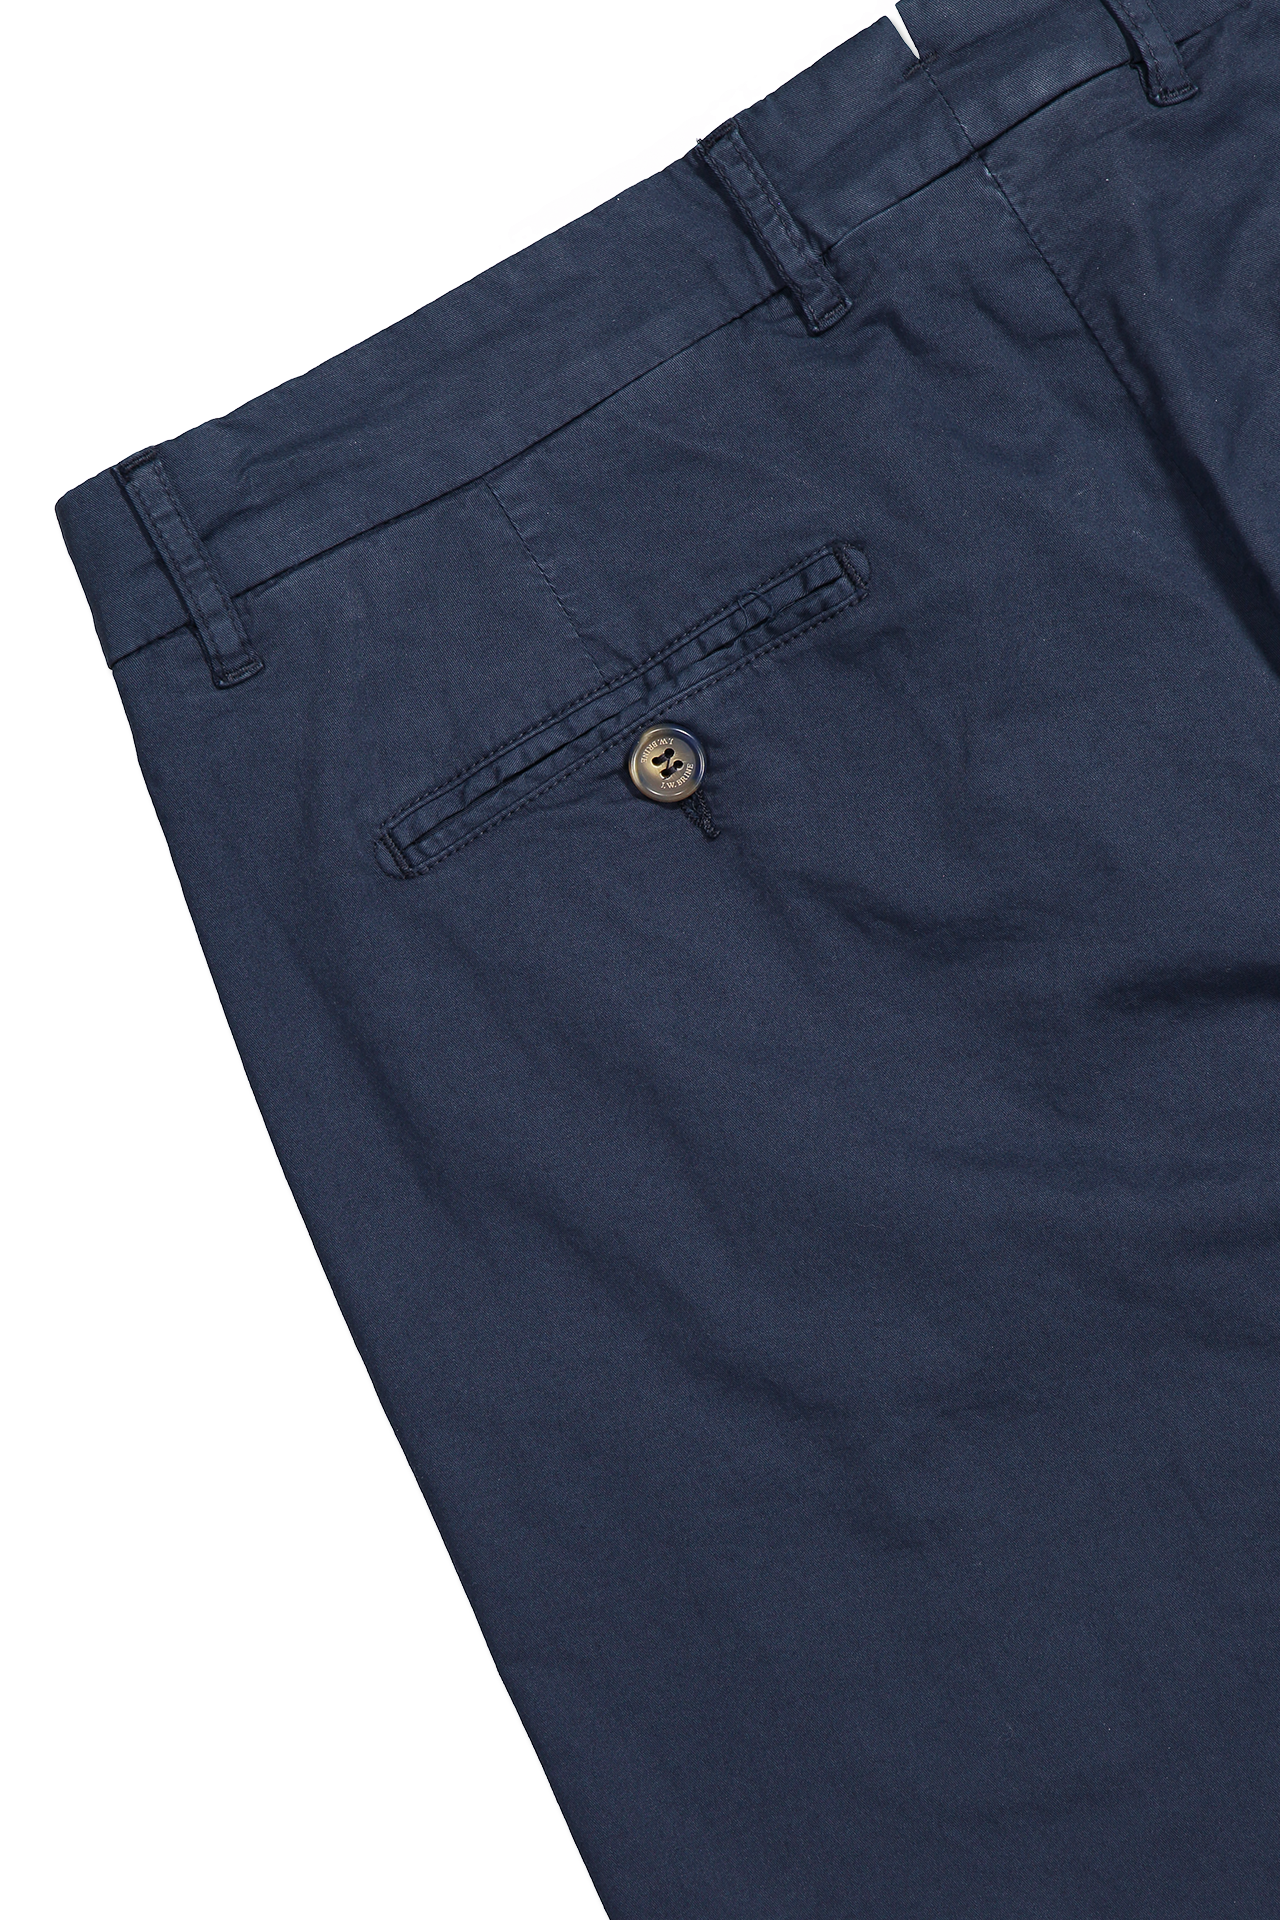 Back Pocket Image of JW Brine James 18 Cotton Mix Chino Trouser